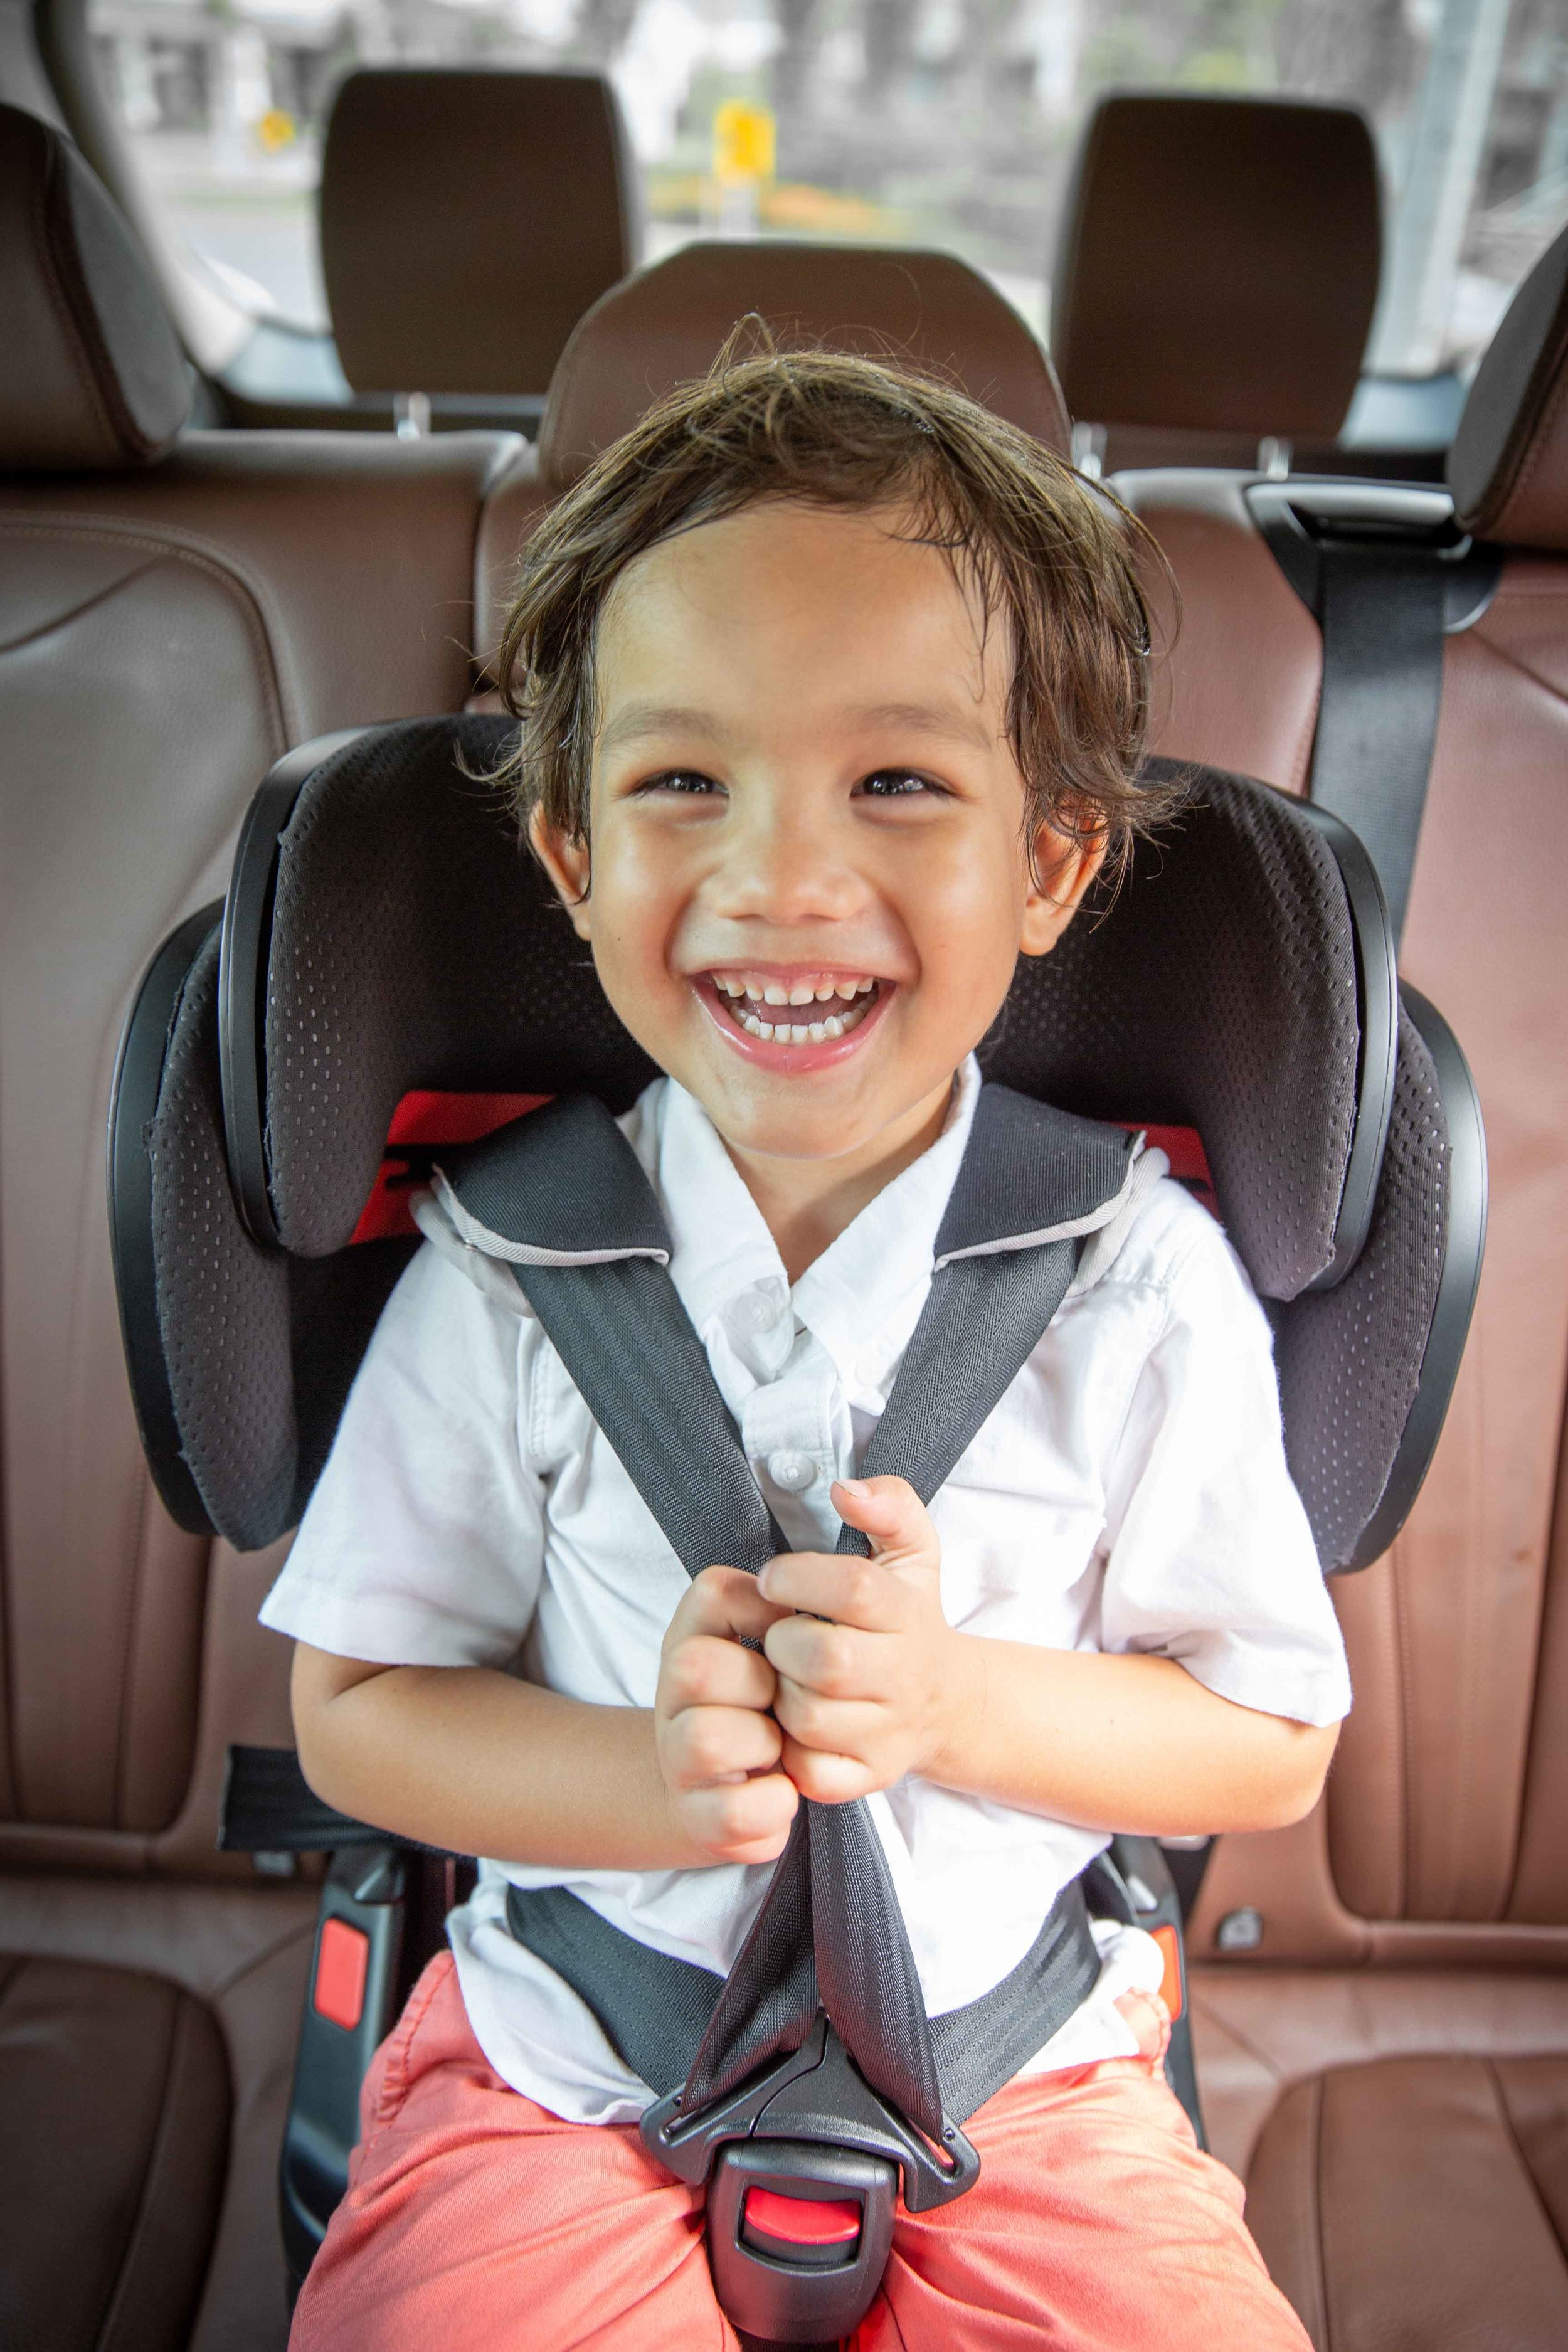 David's son Jakob, now 4 years old, enjoying his ride in the TinySeats children's car seat.